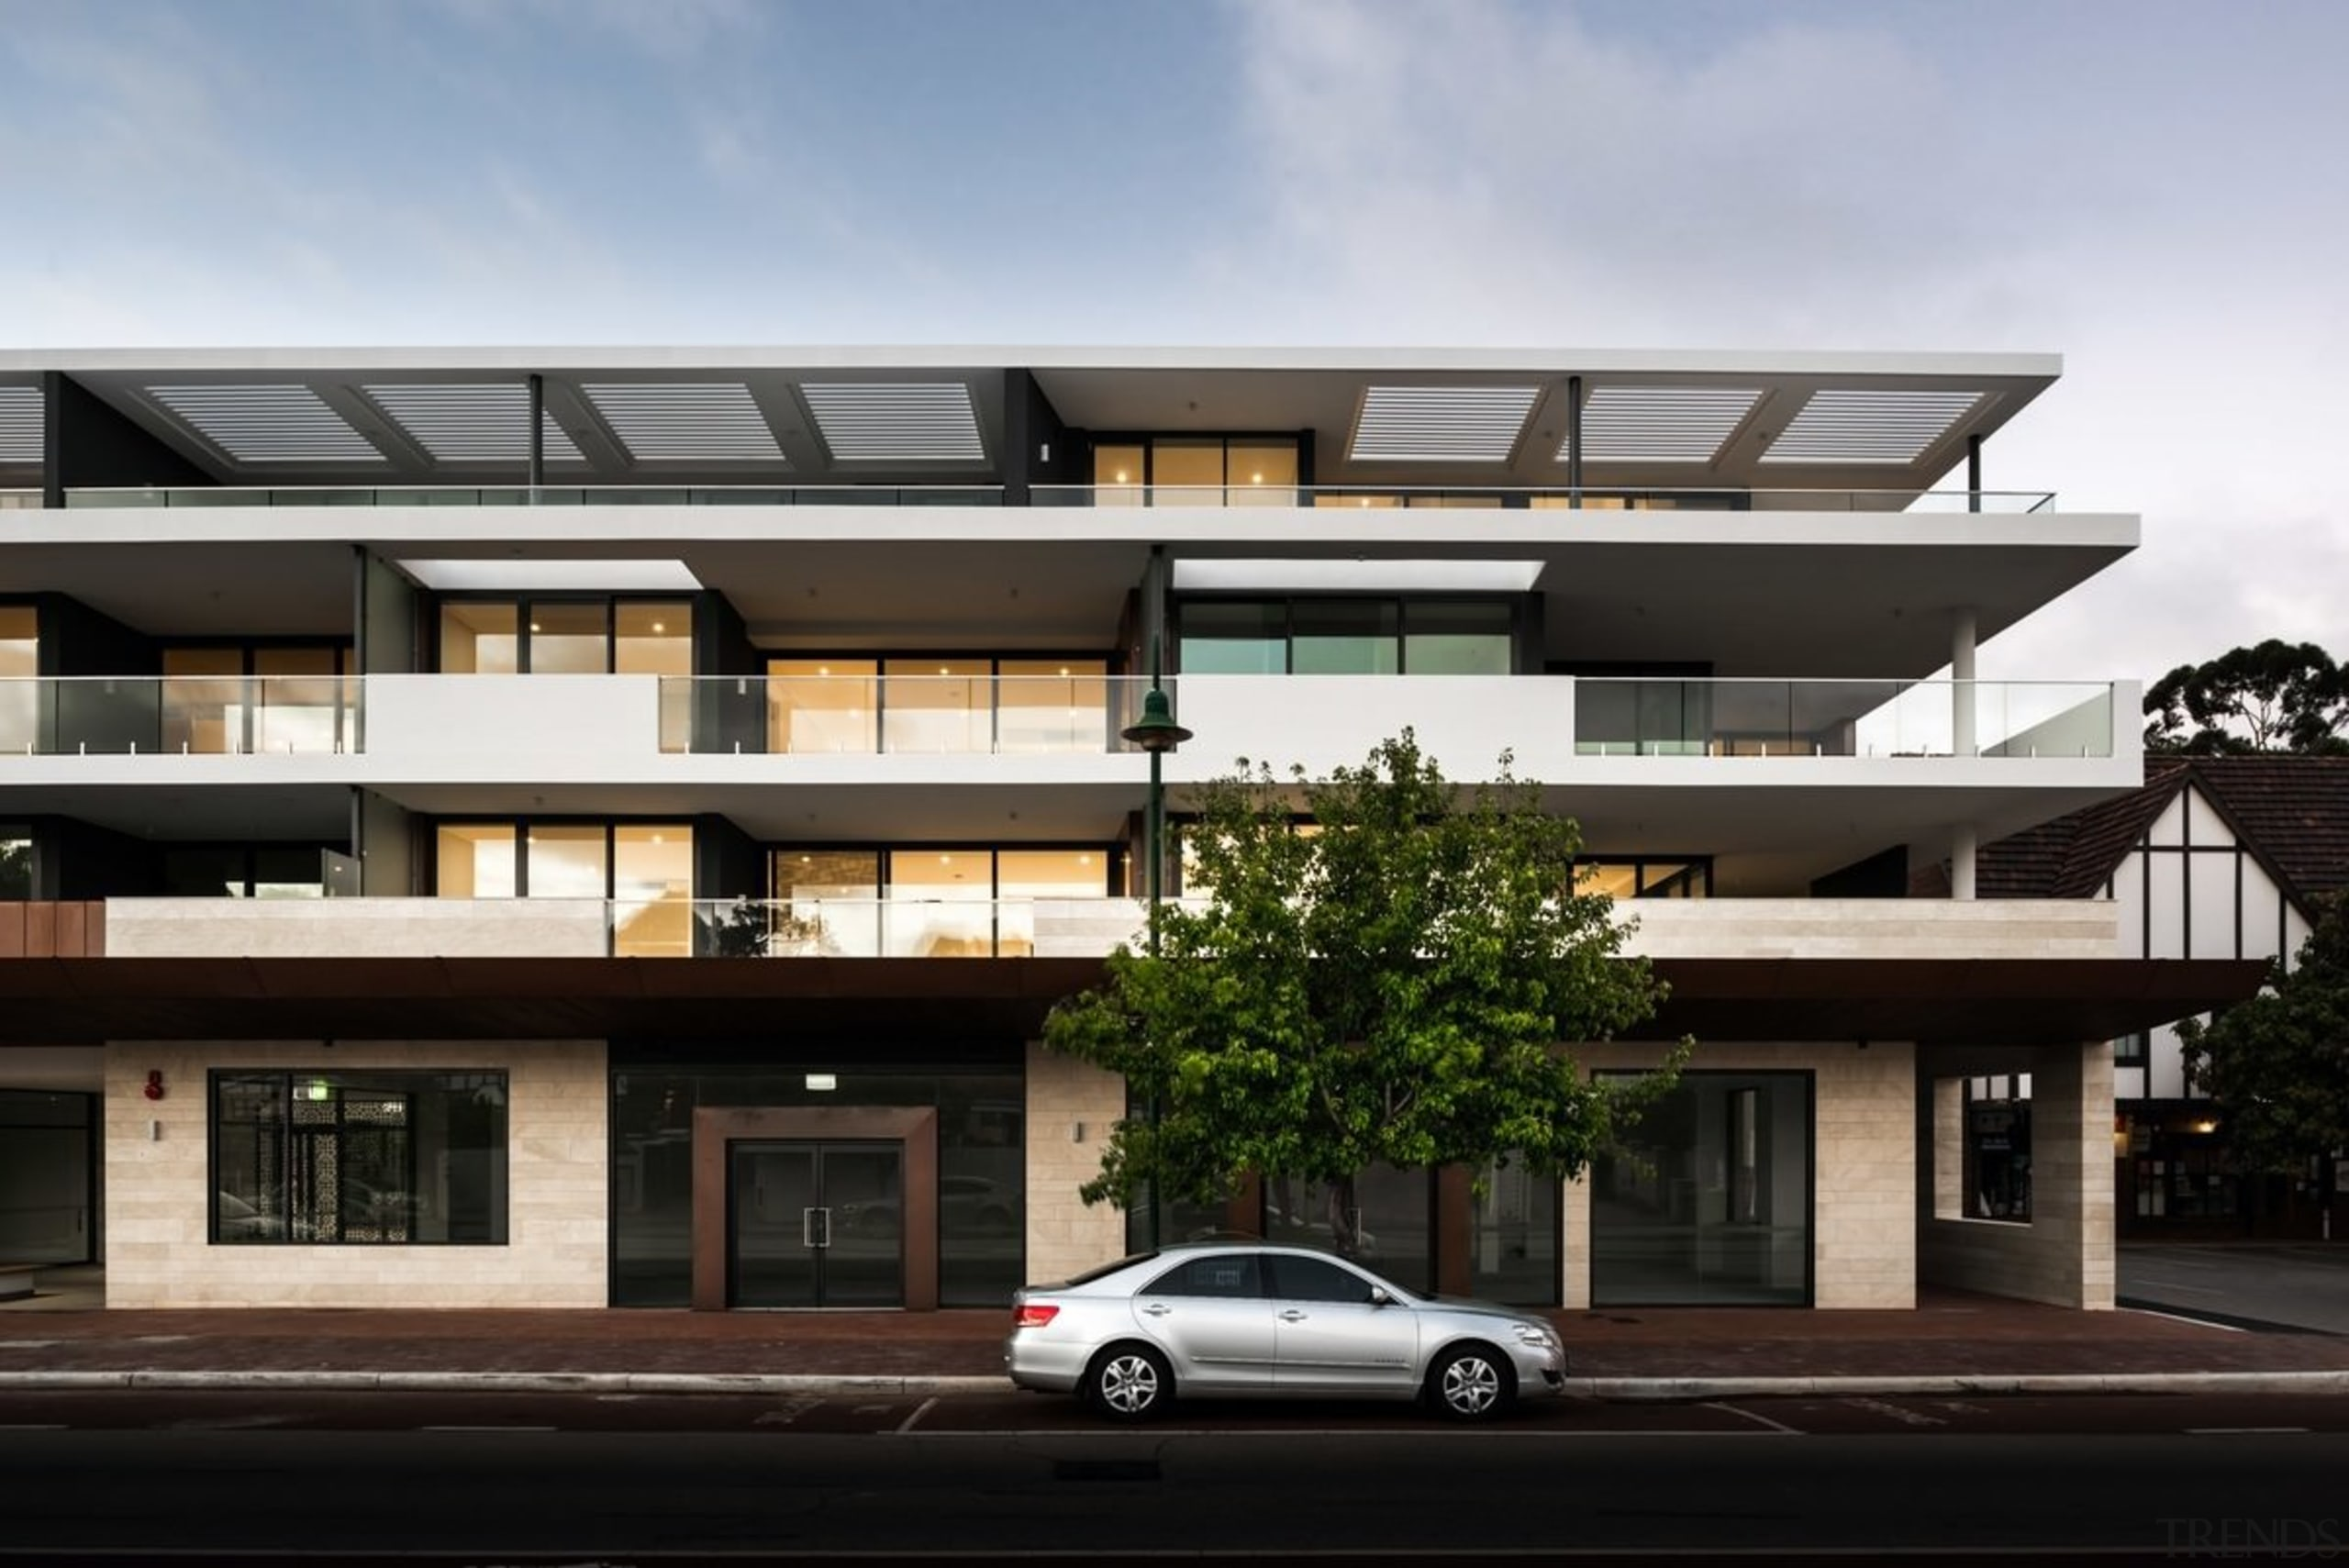 Screens on the top level diffuse the sunlight apartment, architecture, building, commercial building, condominium, elevation, facade, family car, house, luxury vehicle, mixed use, neighbourhood, property, real estate, residential area, black, gray